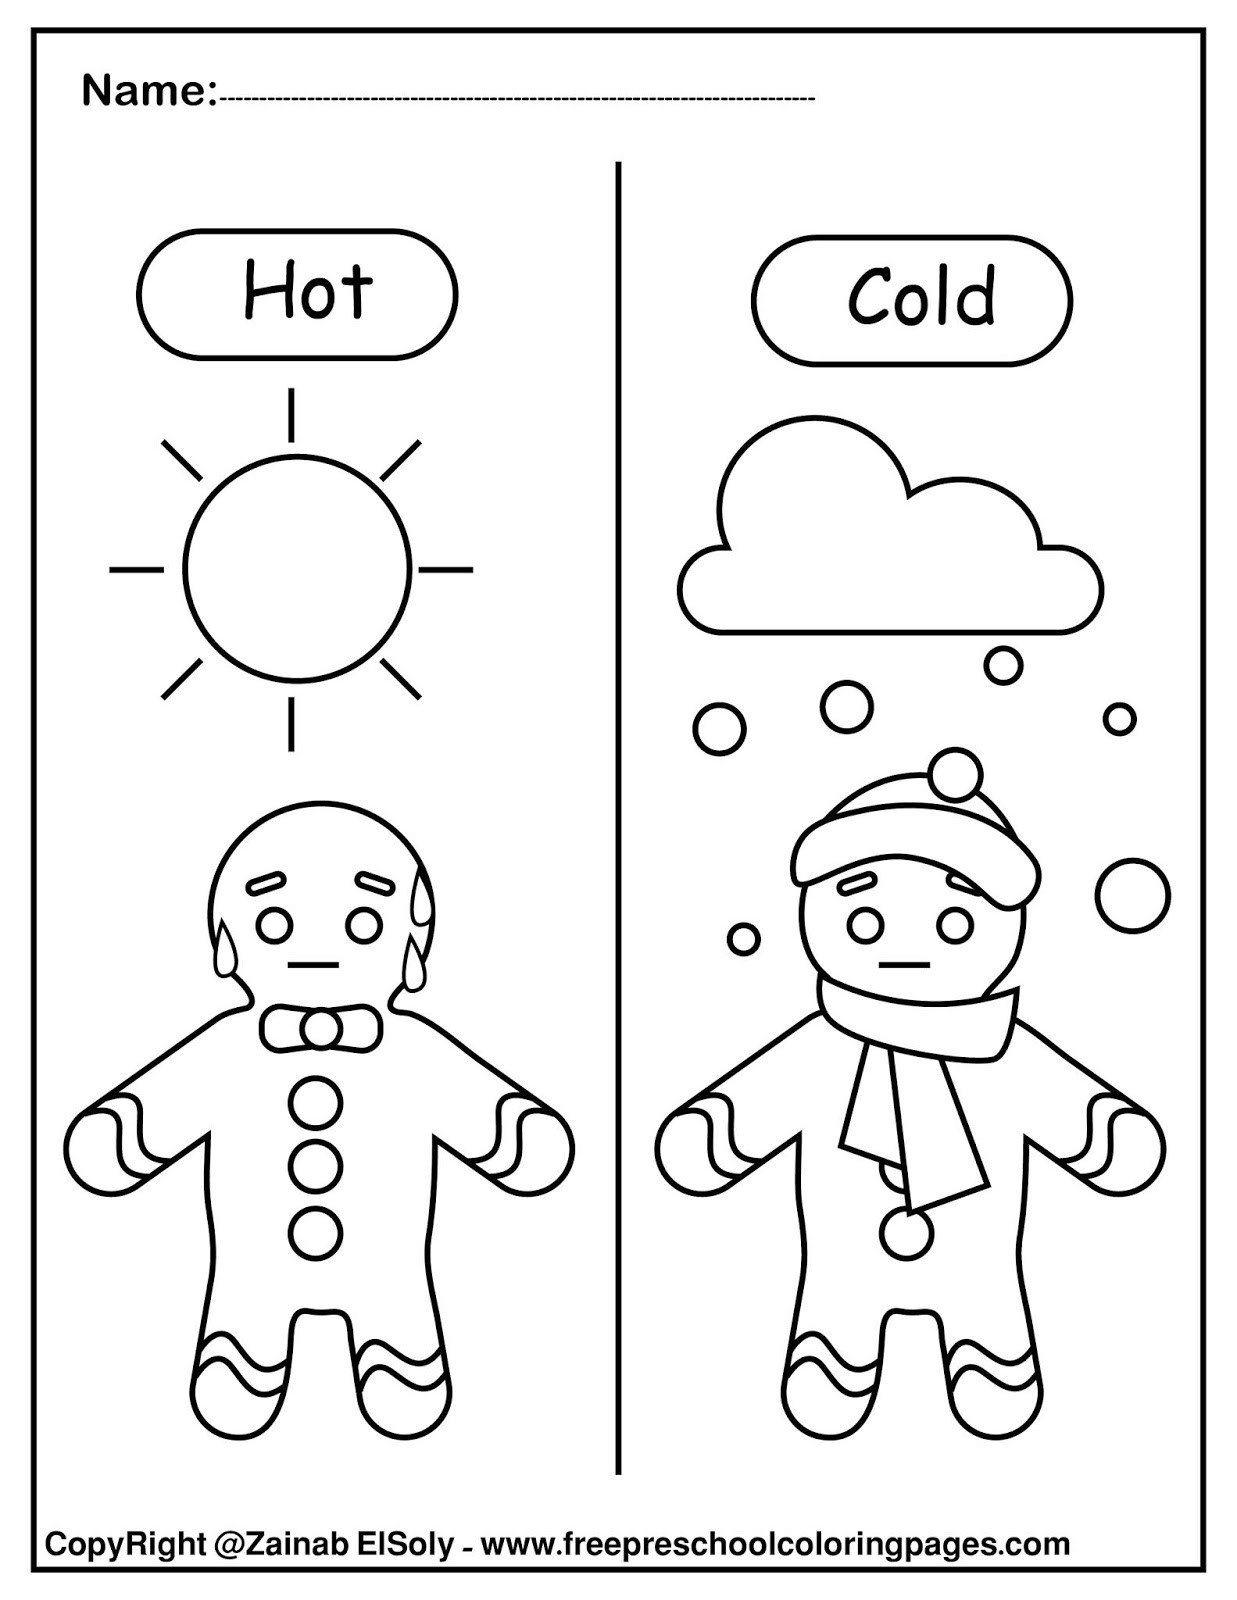 11 gingerbread man opposites for kids free preschool coloring pages free printable christmas new year activity for kid hot and cold 01